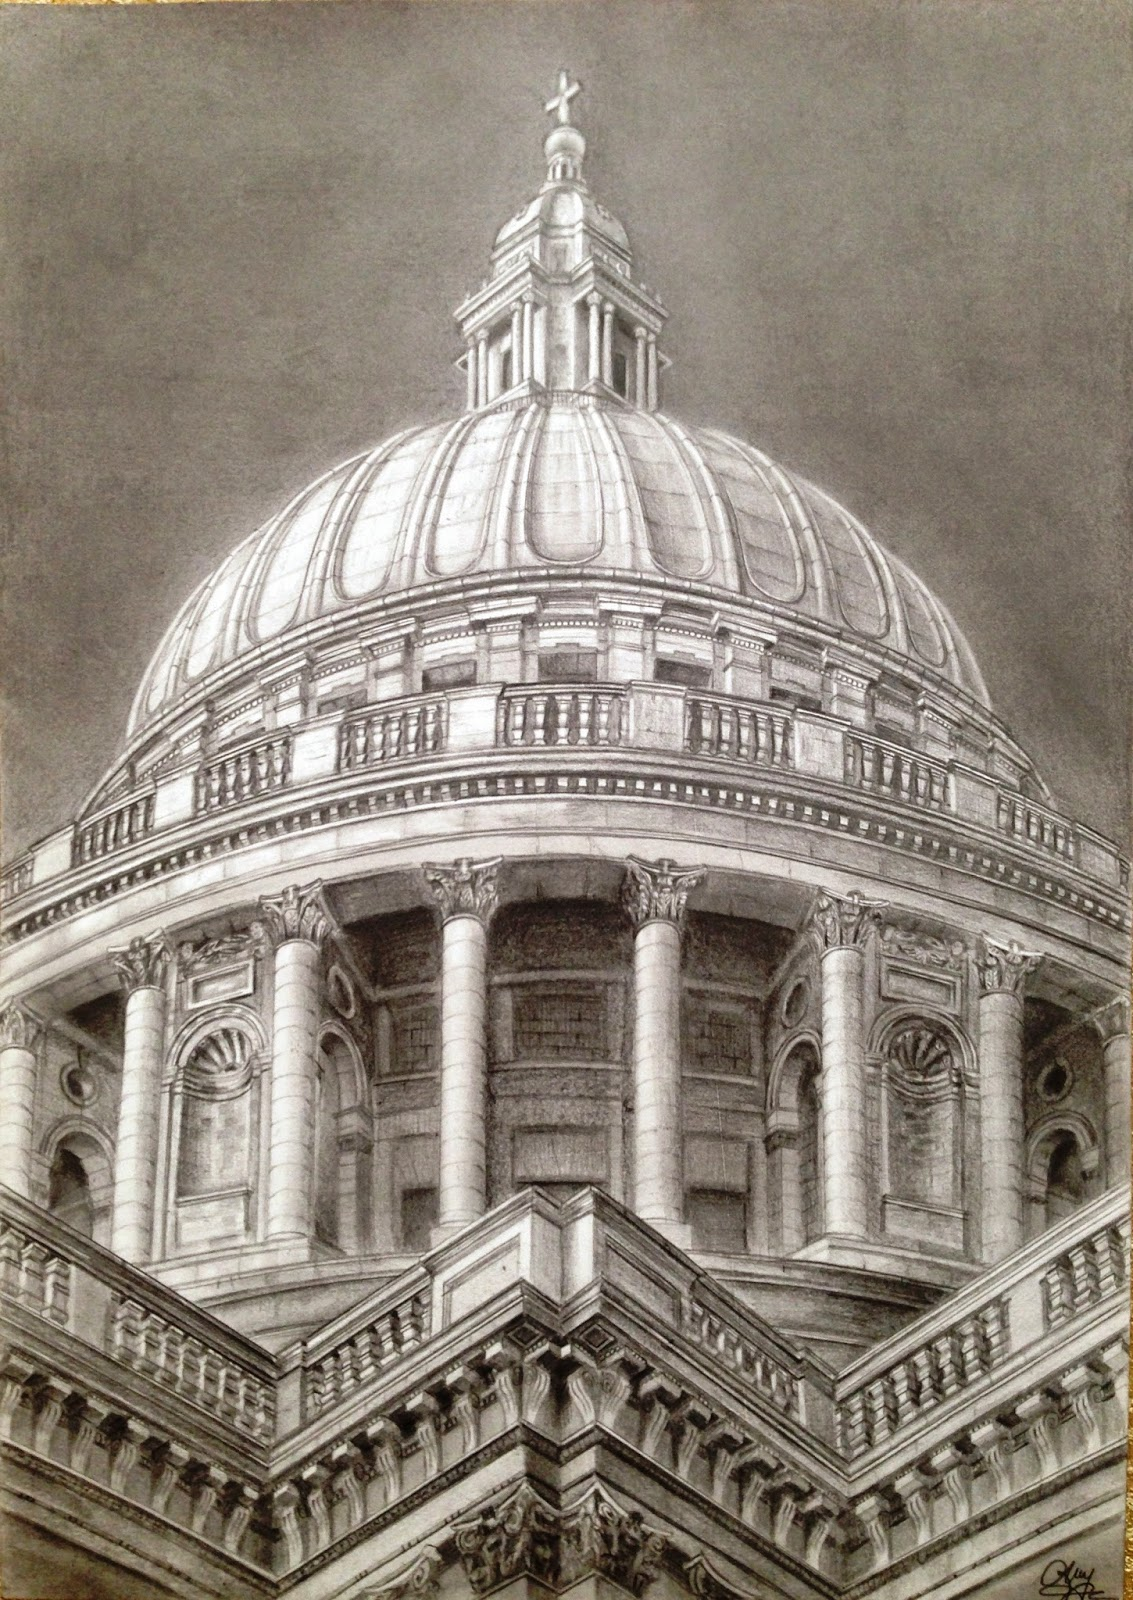 Architecture Drawing Pencil dreams of an architect: st. paul's cathedral - pencil drawing